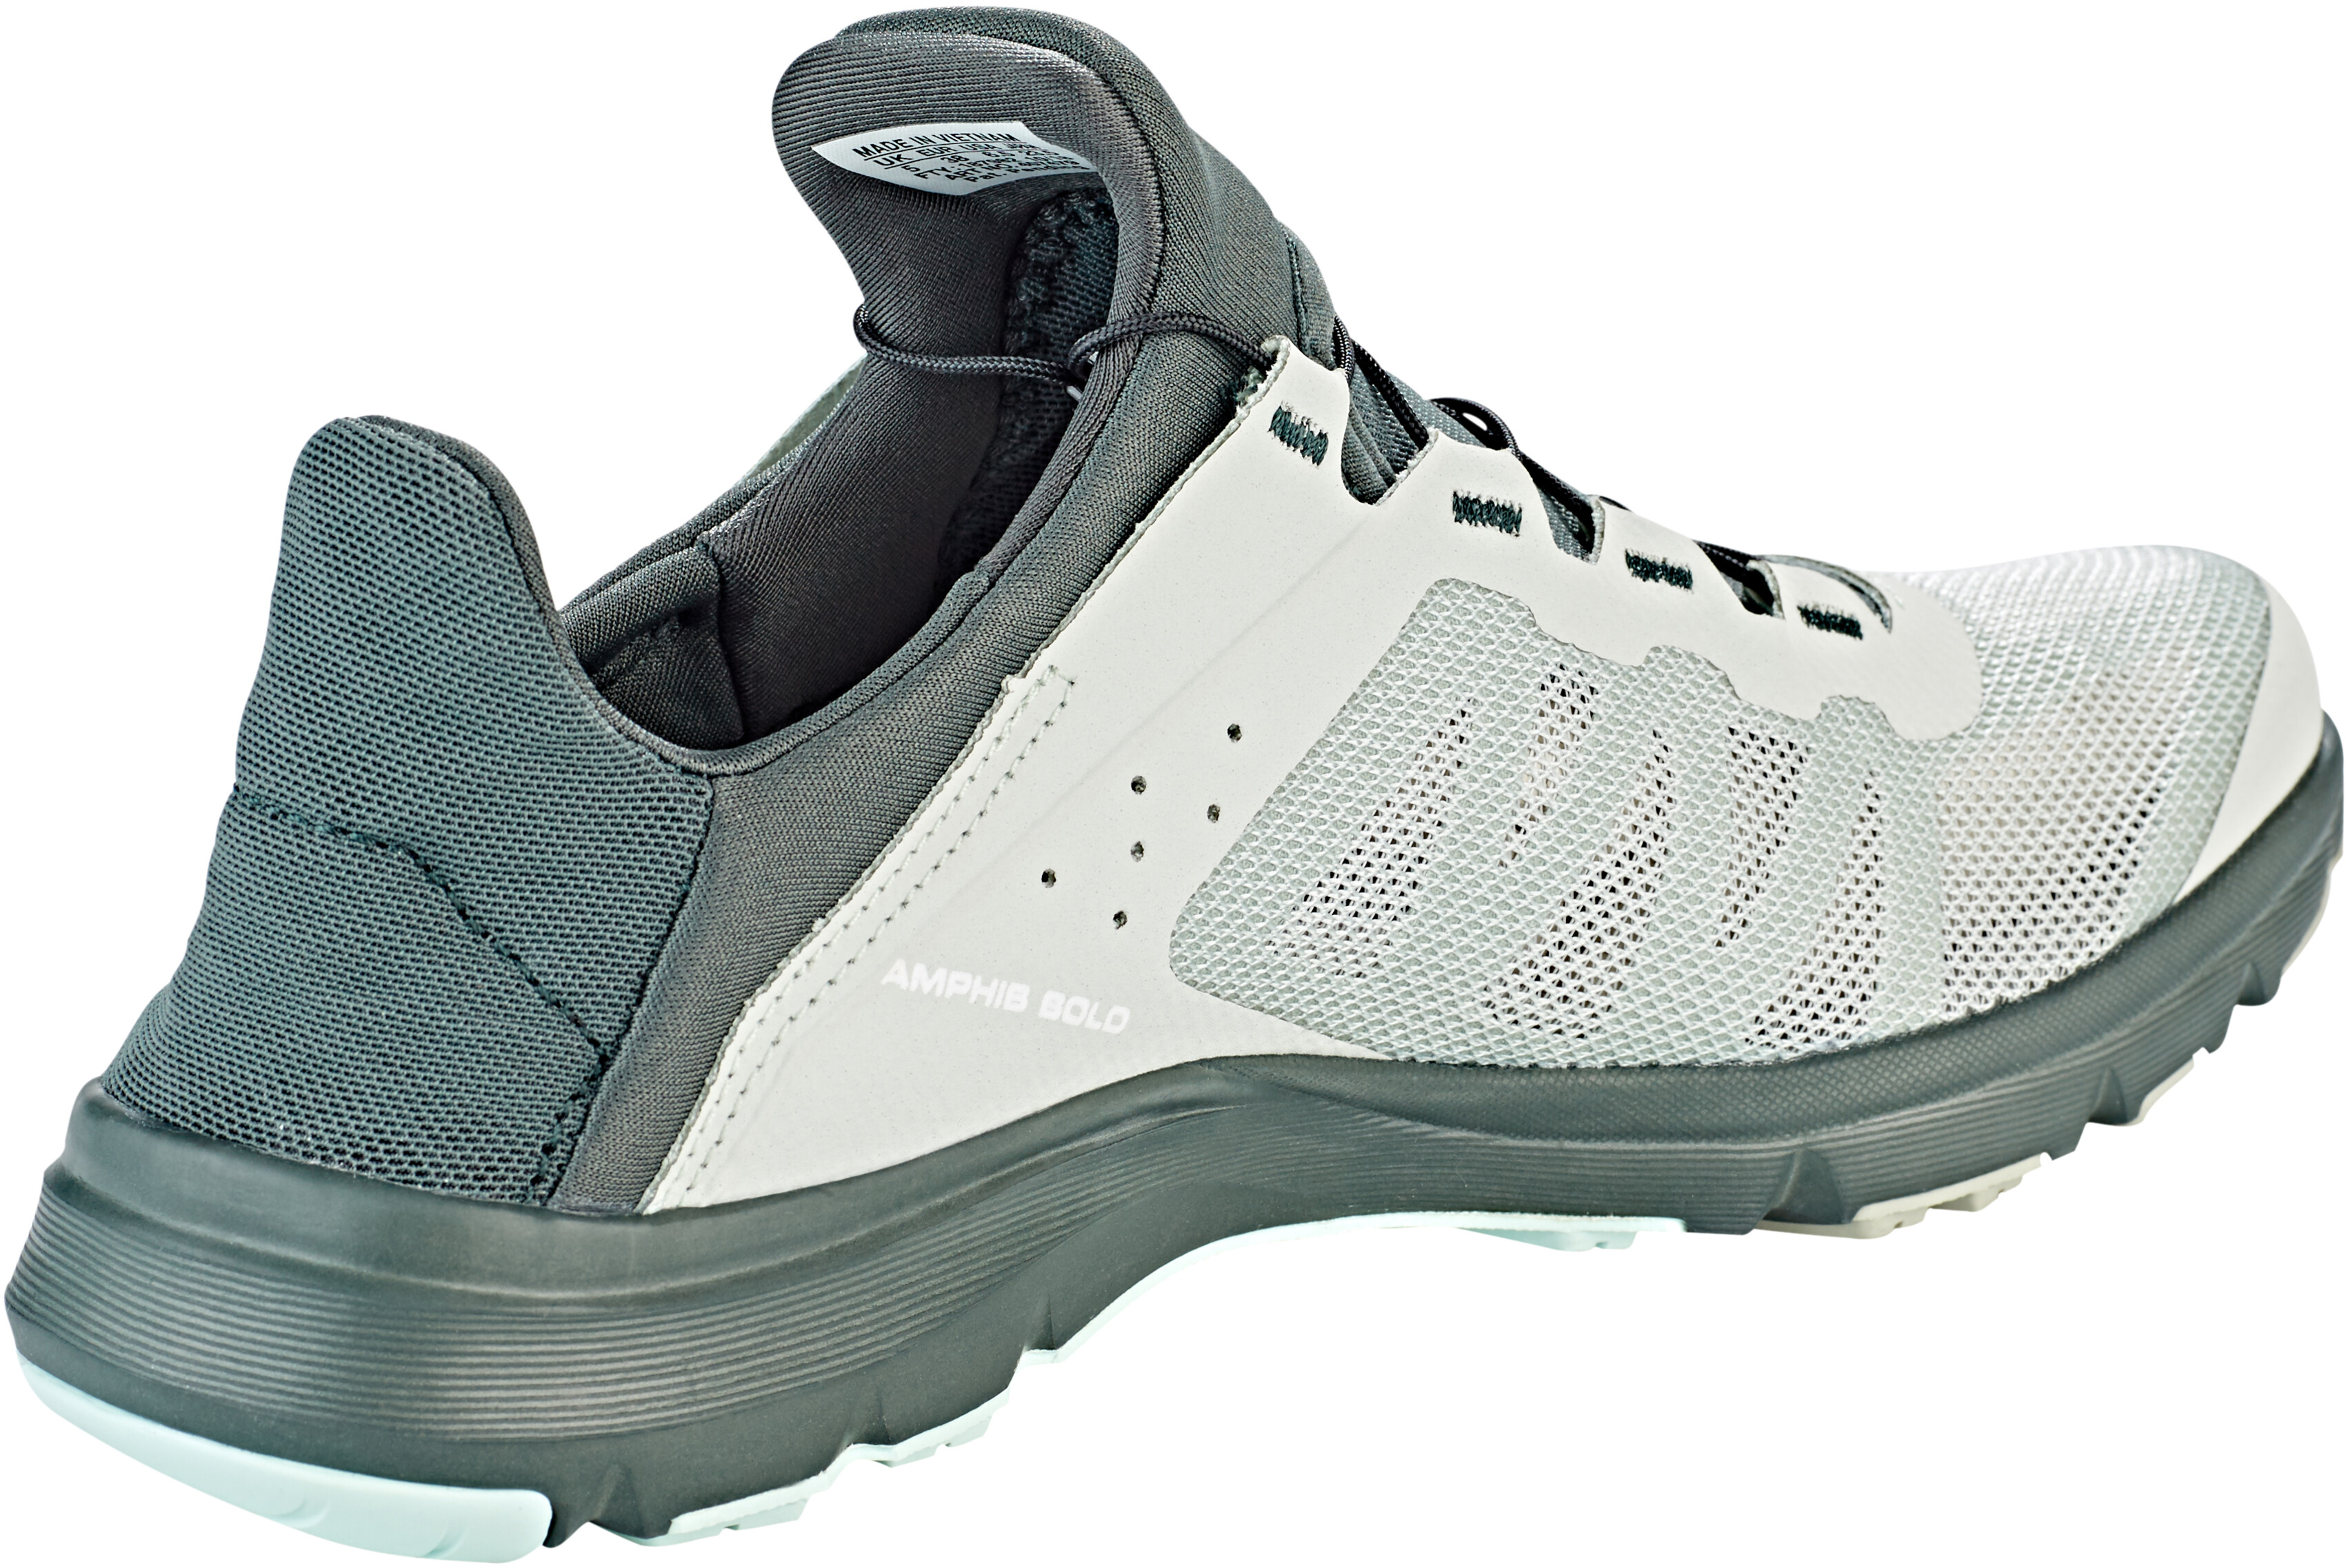 1b92ea42b0 Salomon Amphib Bold Shoes Women mineral gray/crown blue/white